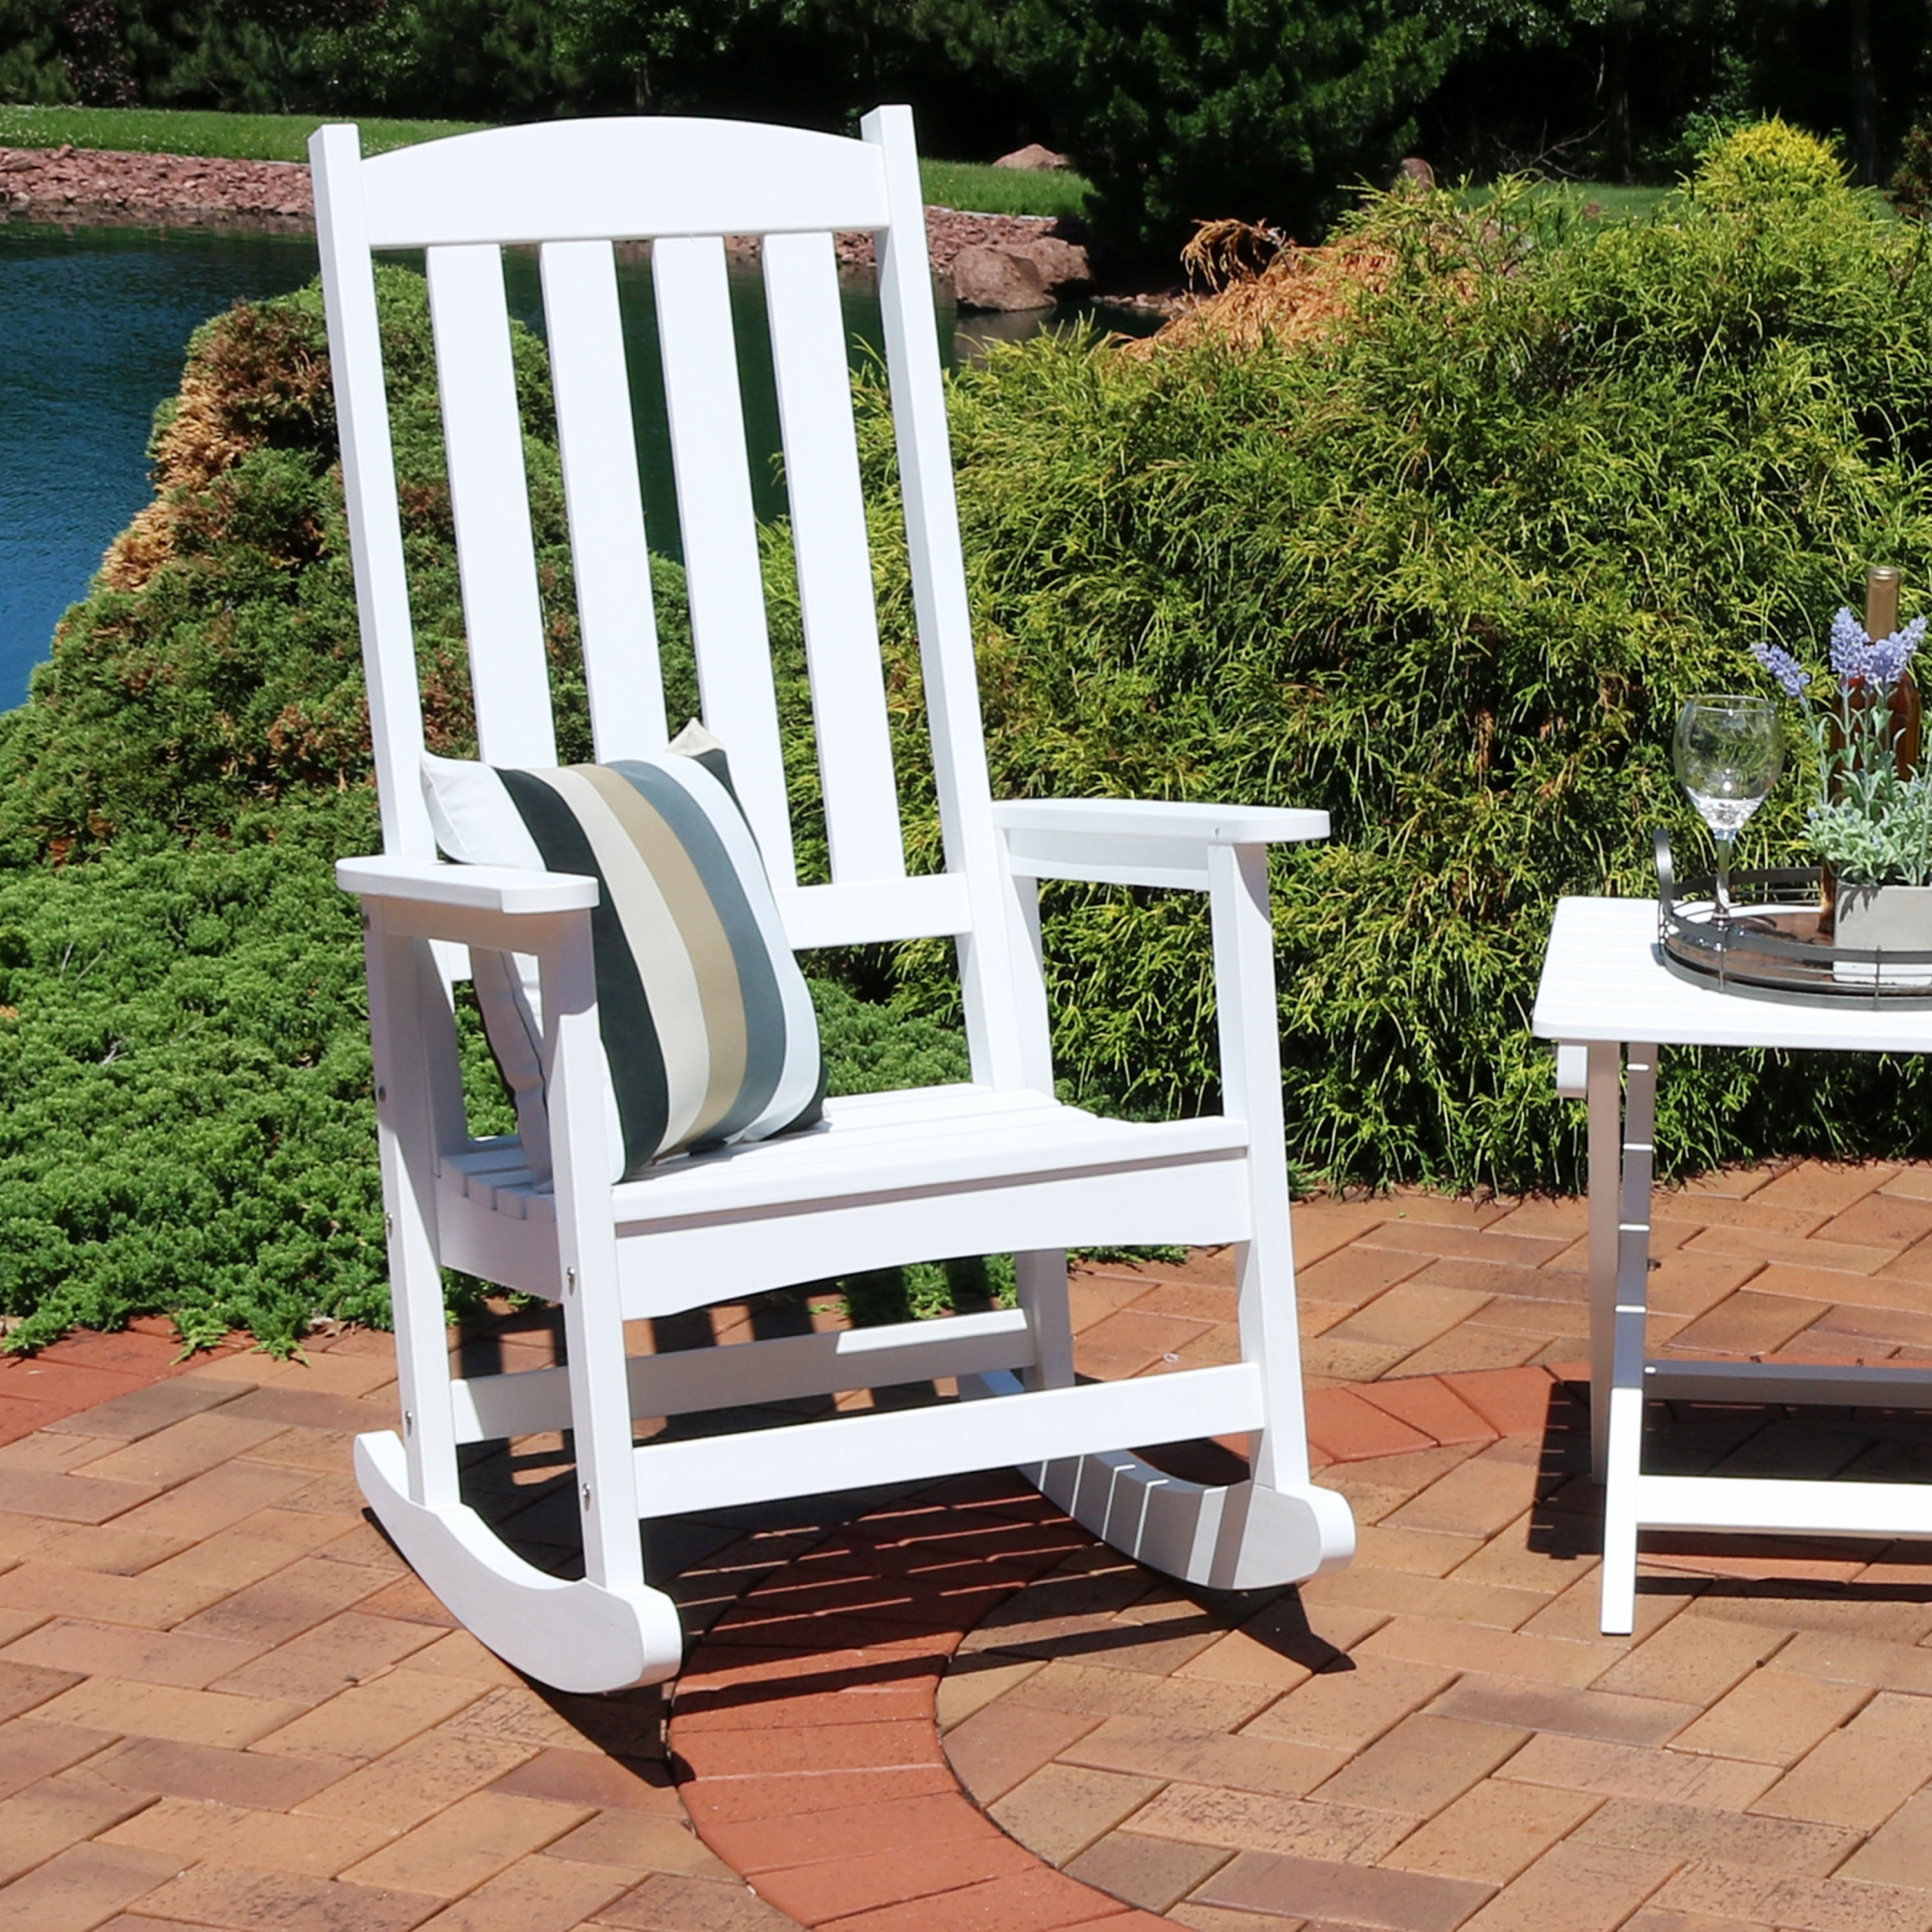 Charmant Shop Sunnydaze All Weather Rocking Chair With Faux Wood Design   Multiple  Colors   Free Shipping Today   Overstock.com   22966931